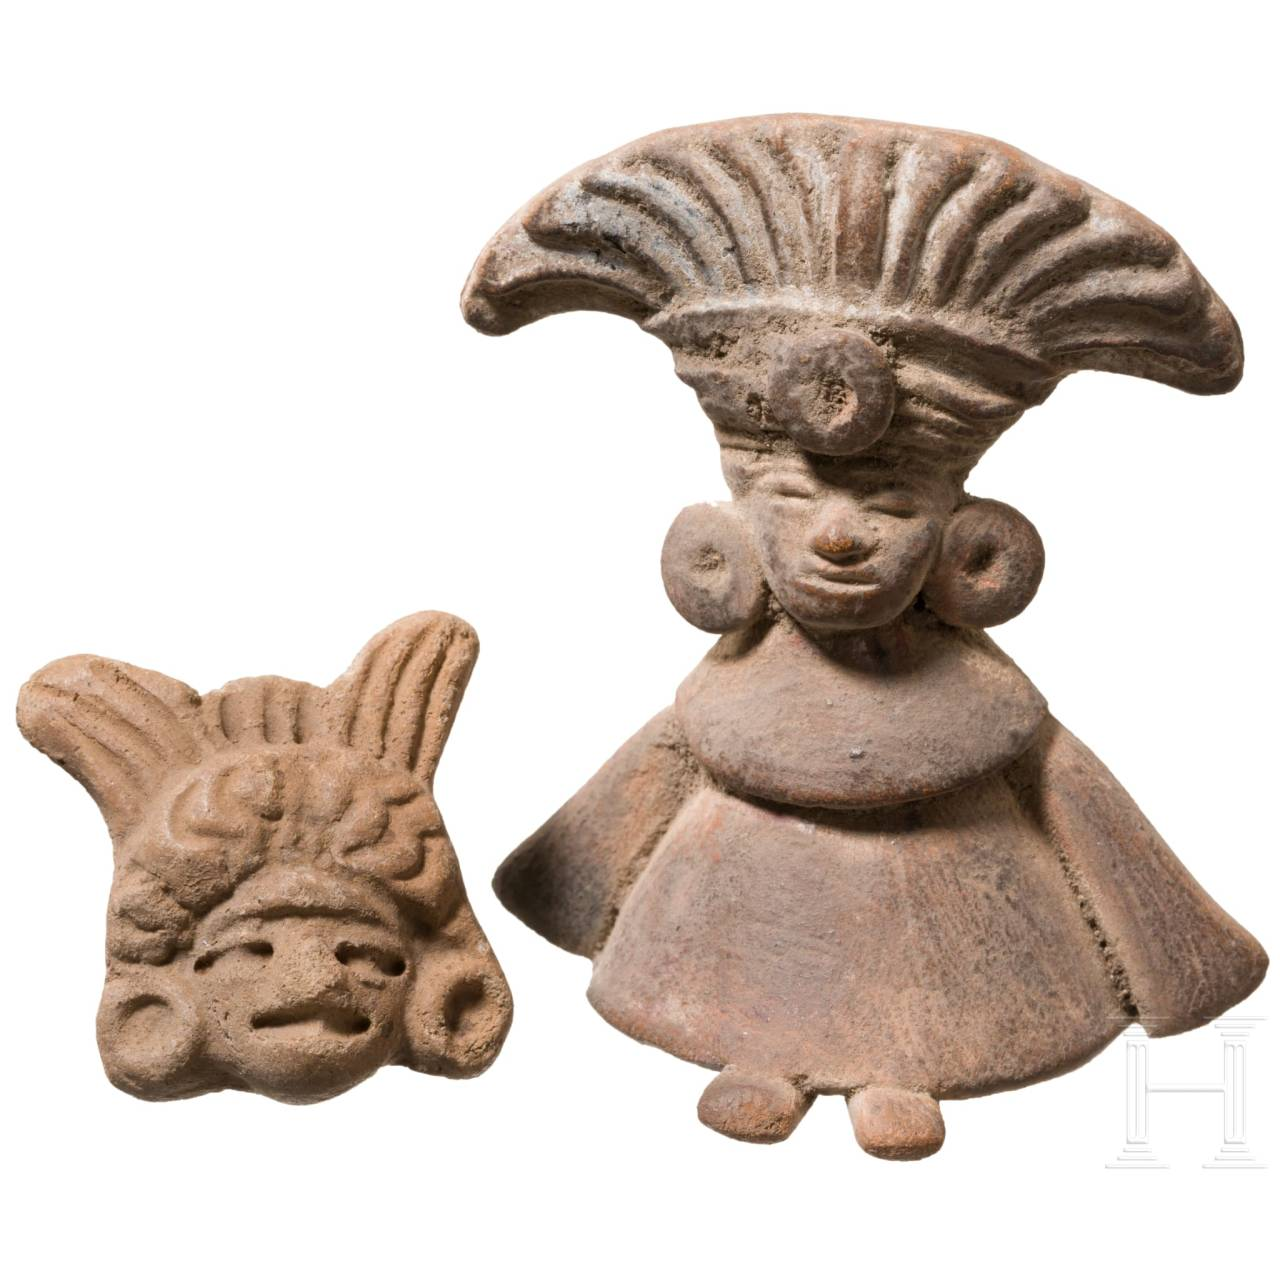 A Central American terracotta figure and an applike, circa 500 – 1500